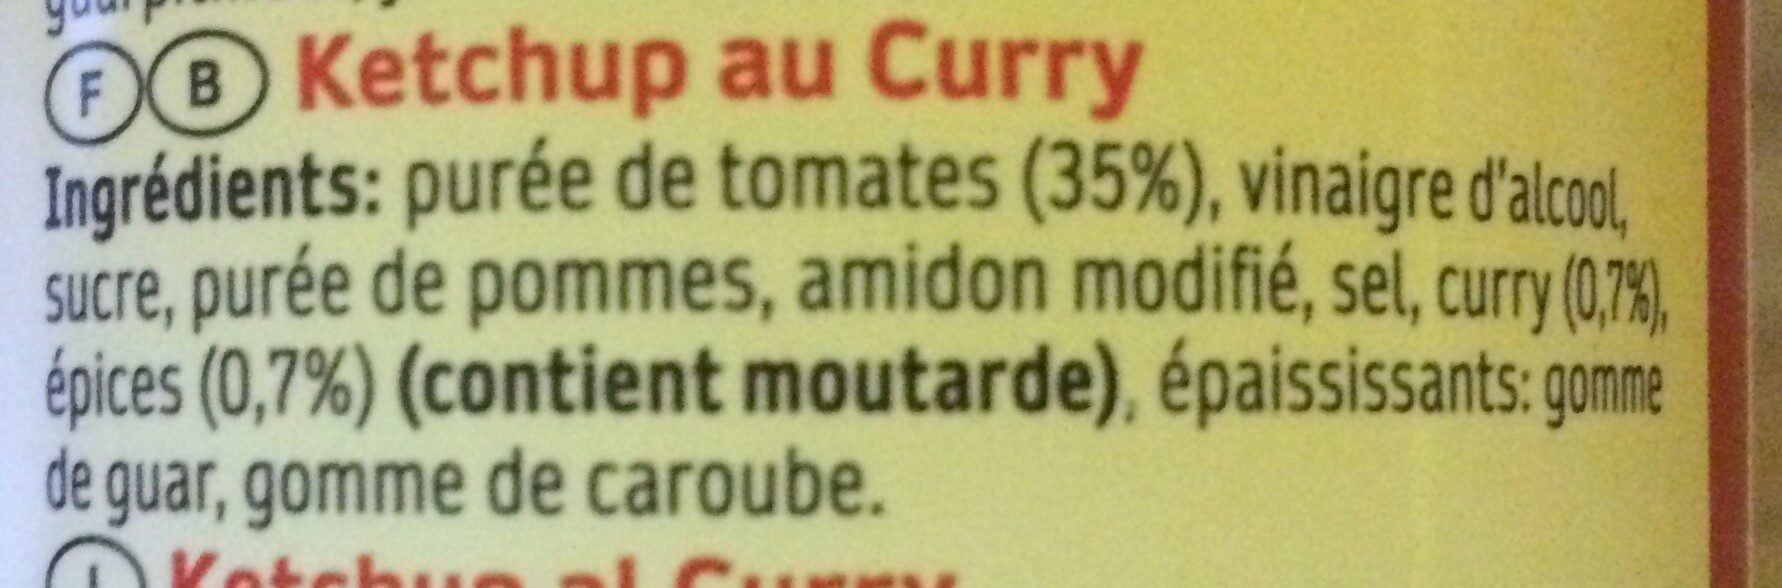 Curry Ketchup - Ingredients